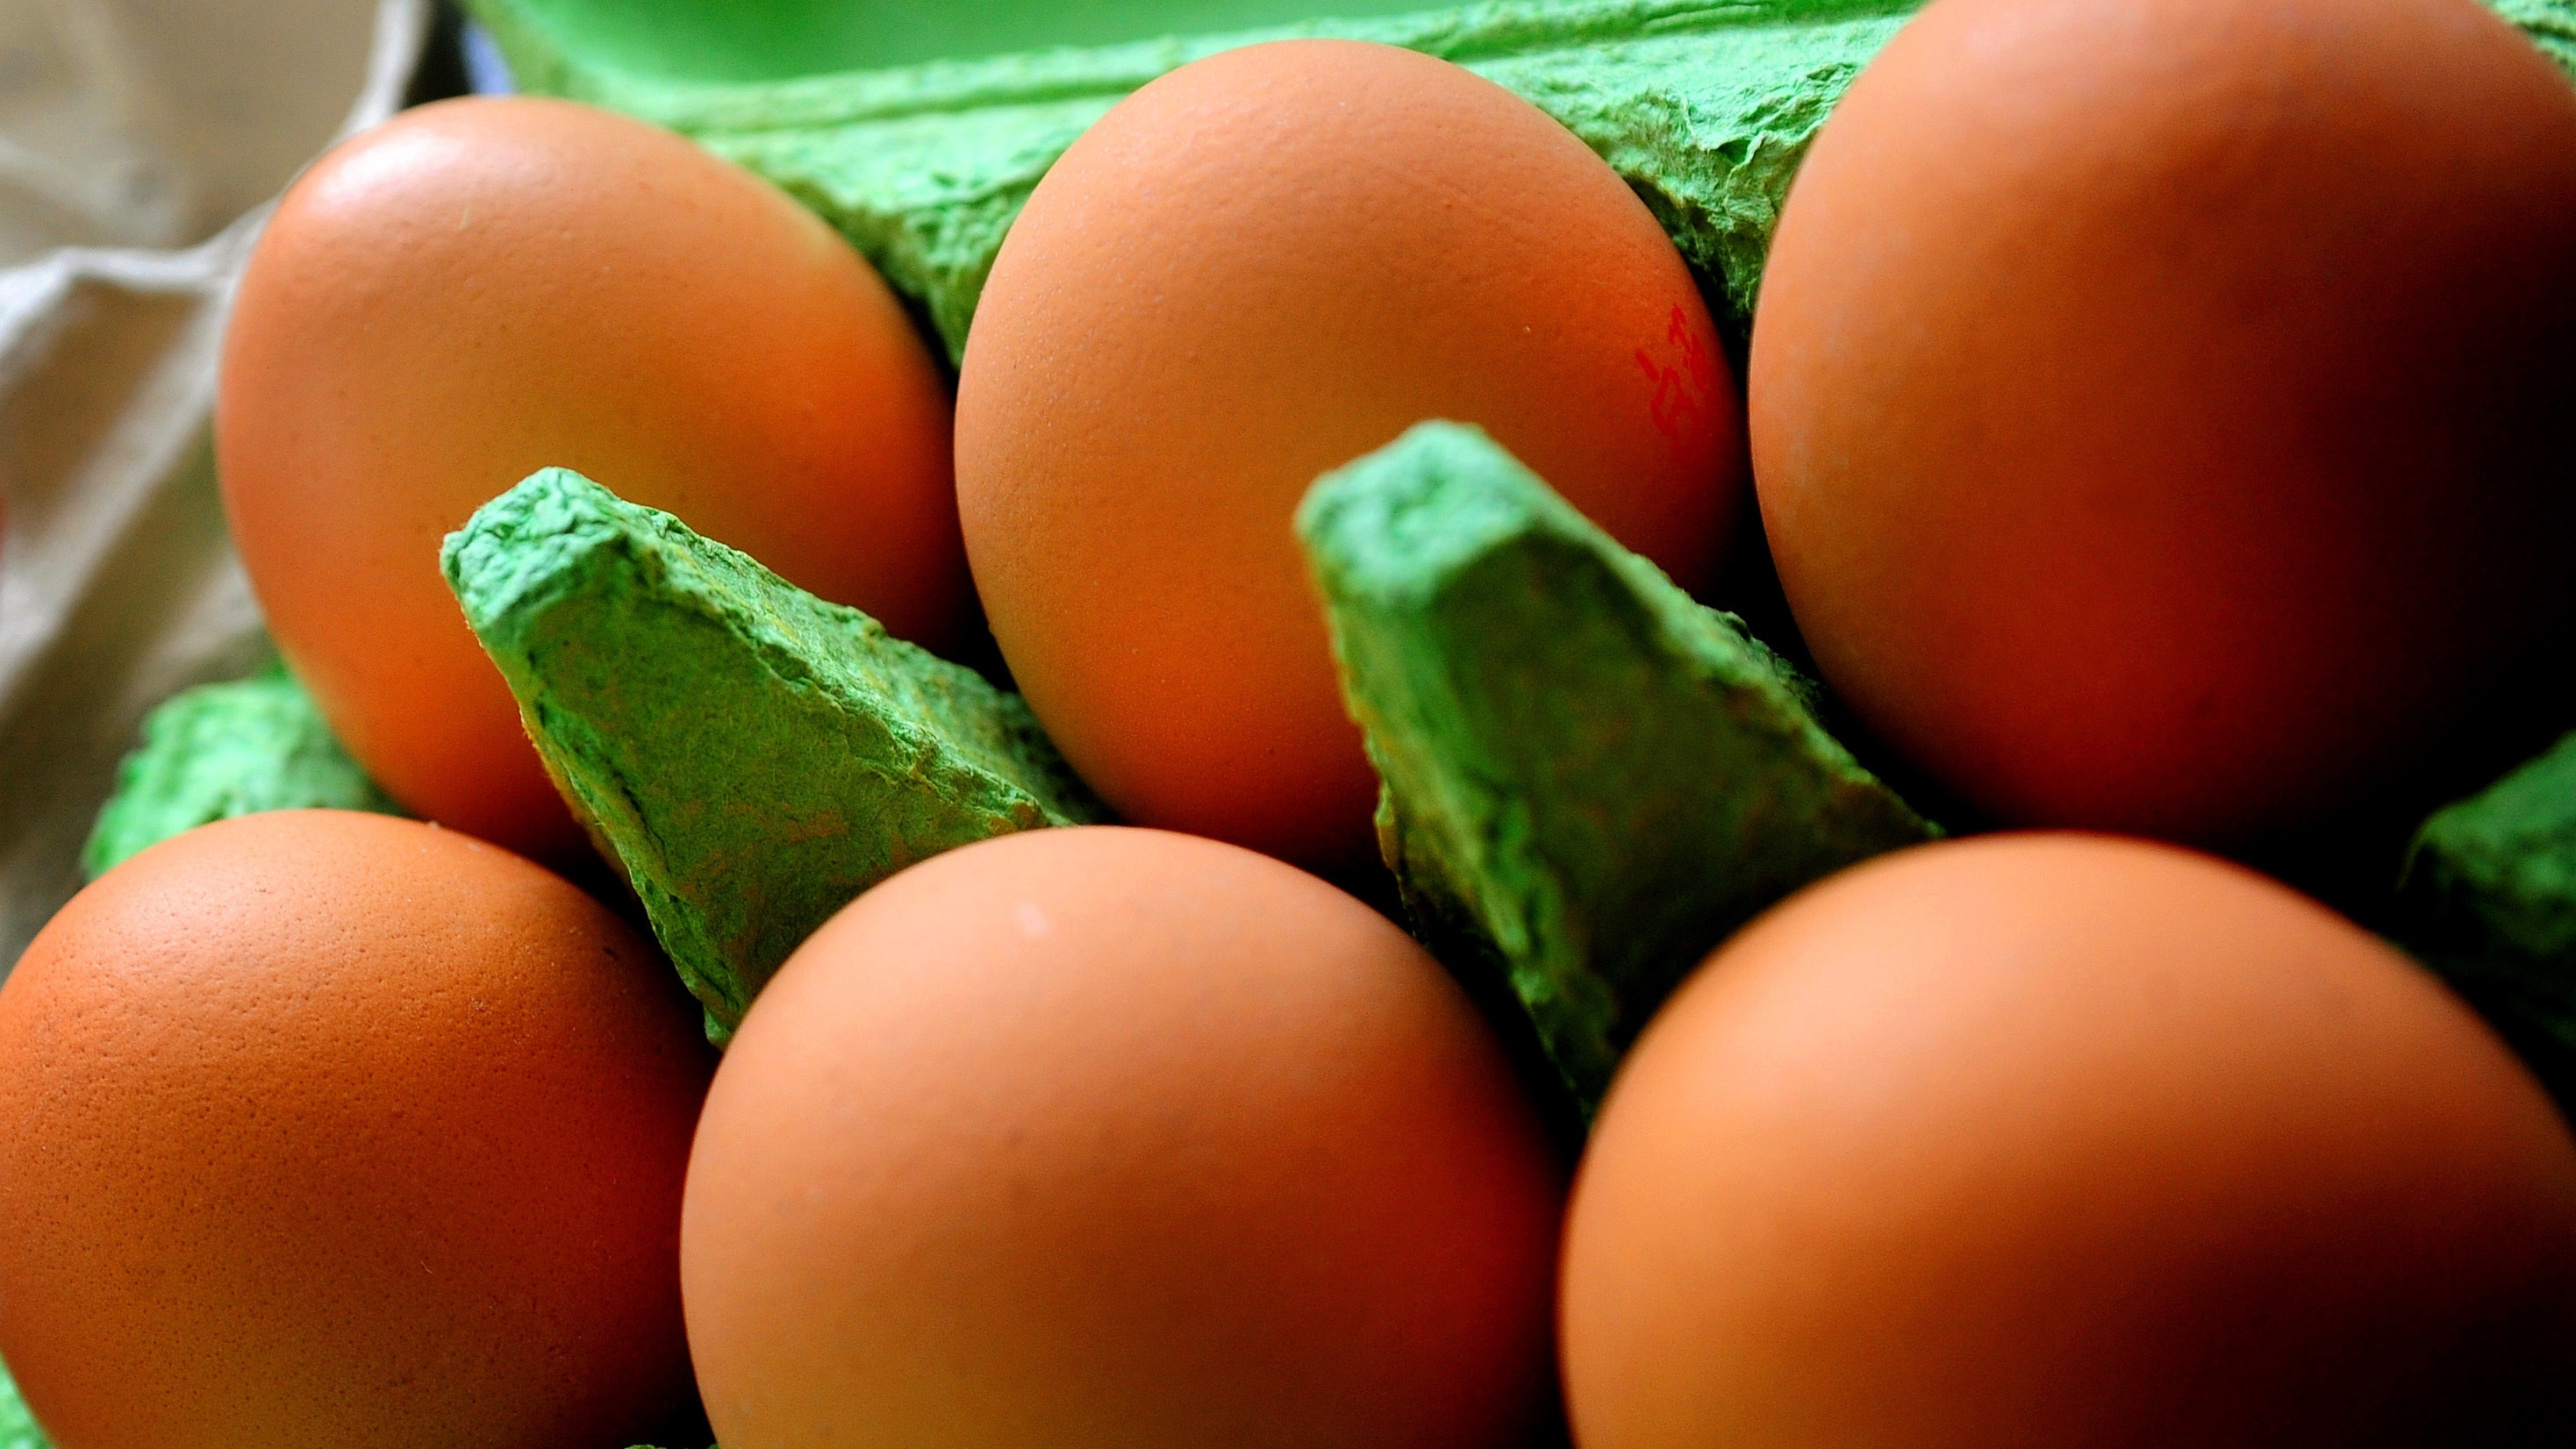 Around 700,000 eggs from Dutch farms implicated in the scare have been distributed to Britain.